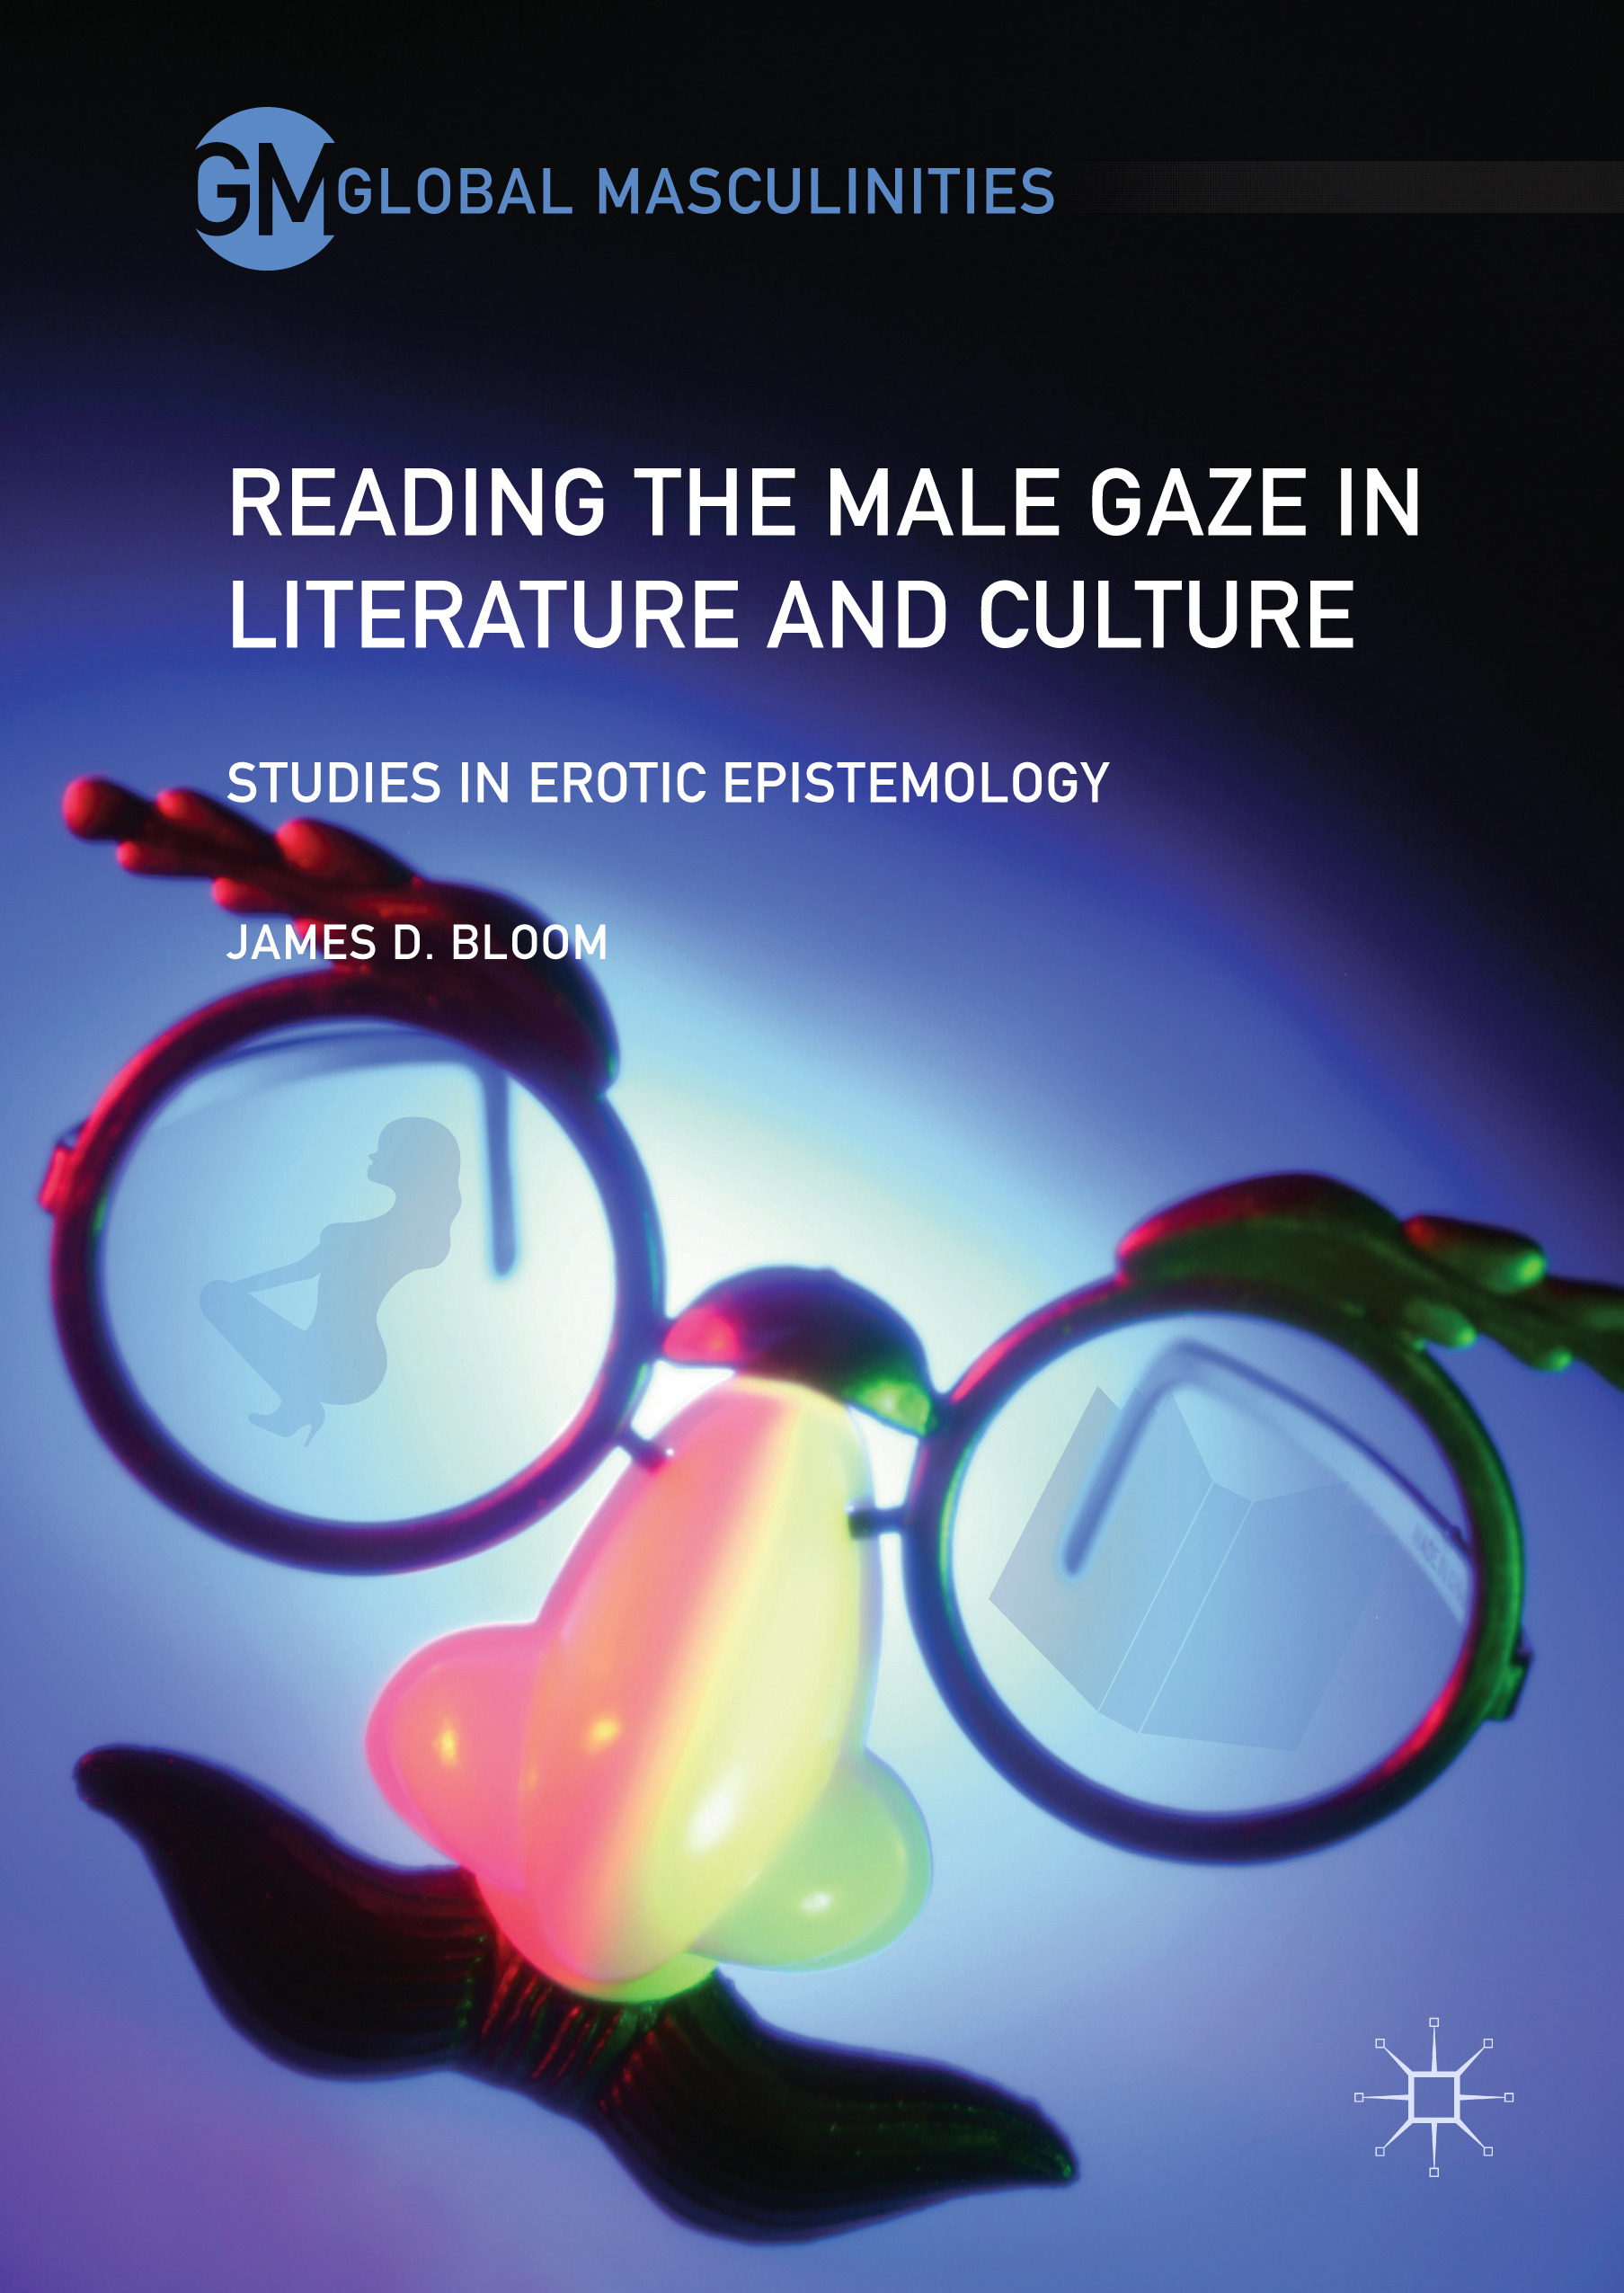 Bloom, James D. - Reading the Male Gaze in Literature and Culture, ebook